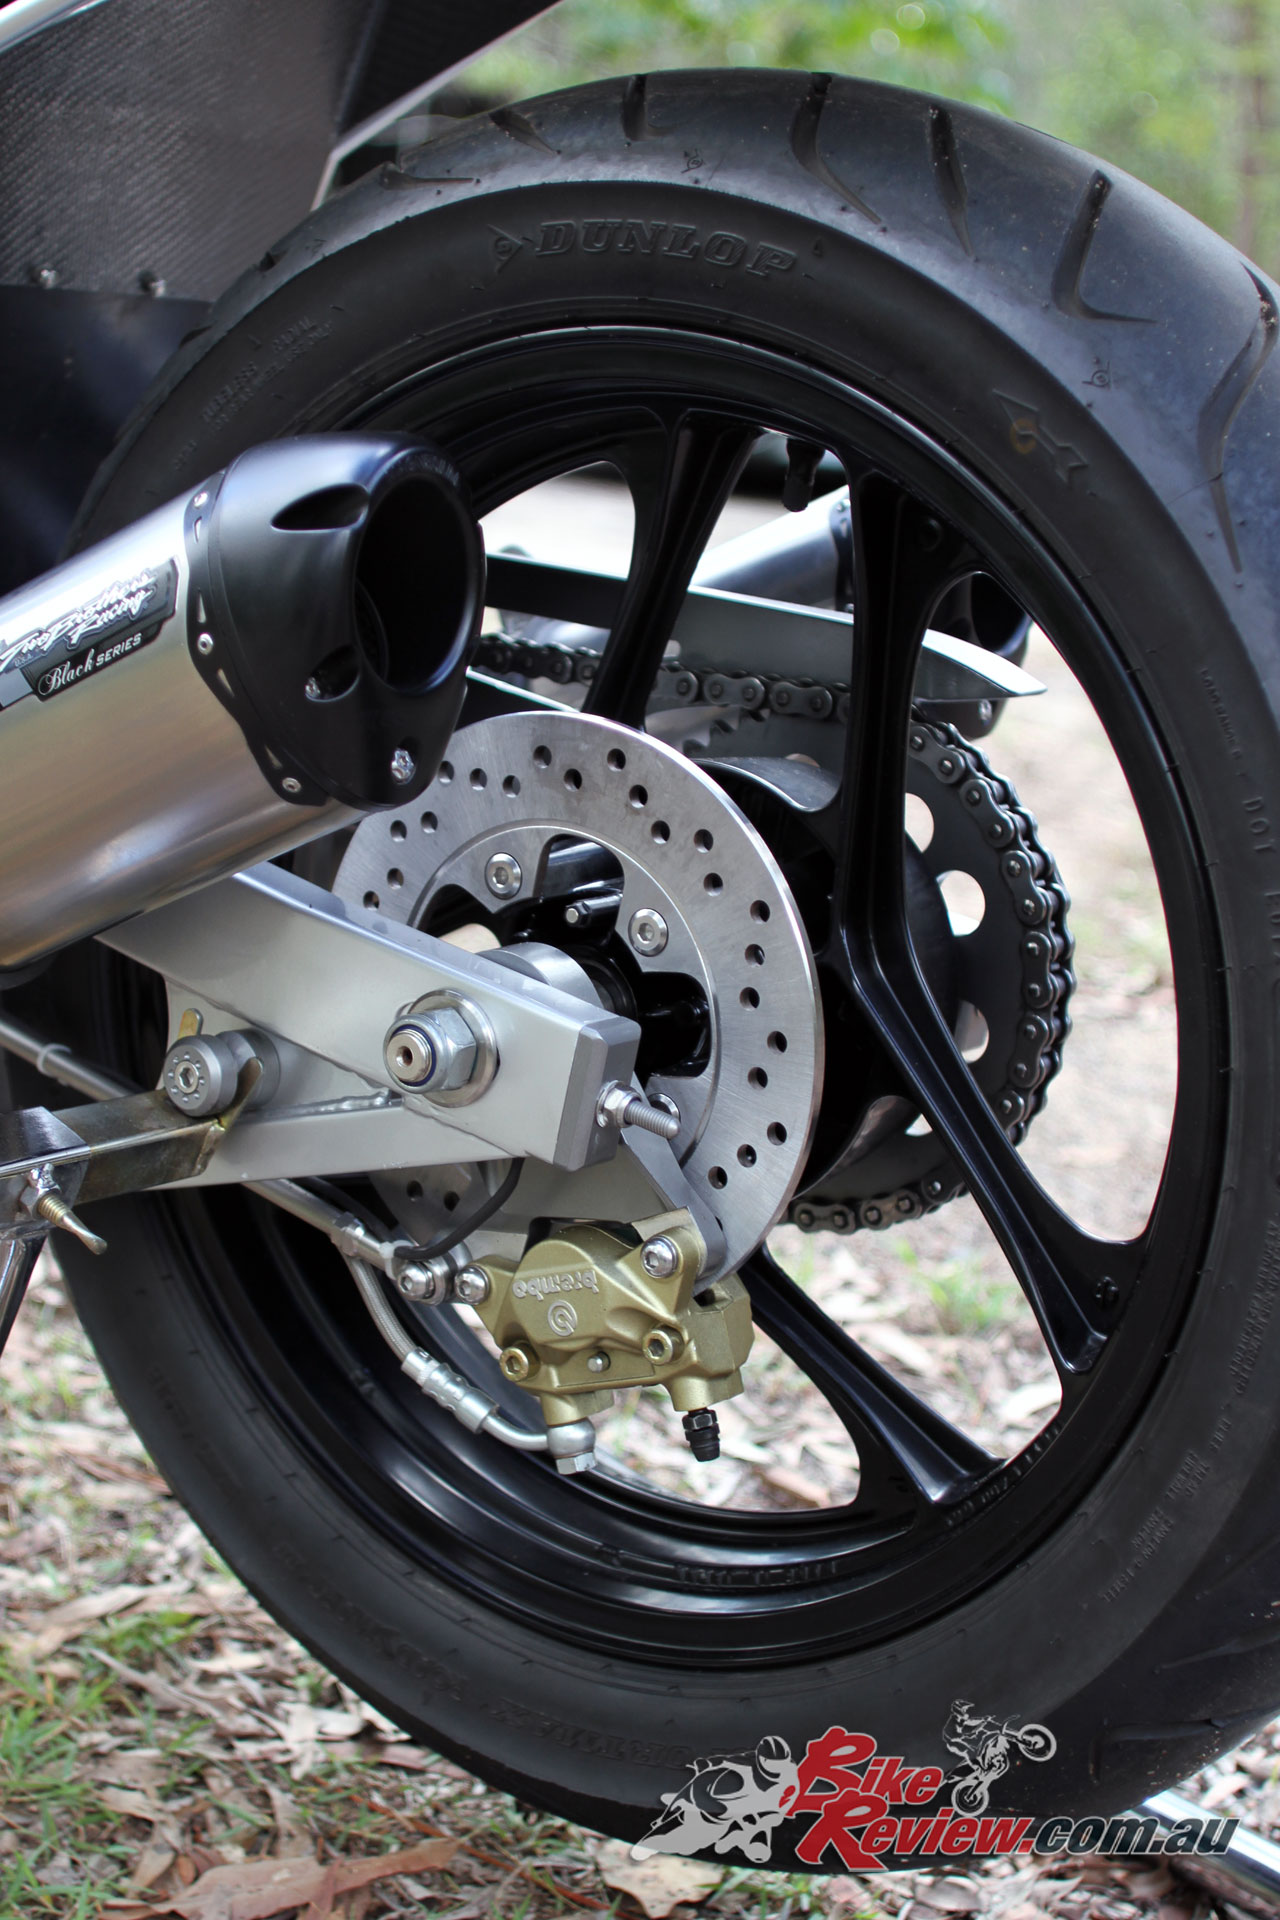 The Motodd kit originally included a swingarm, frame and bodywork, with this project starting just with the frame and swingarm